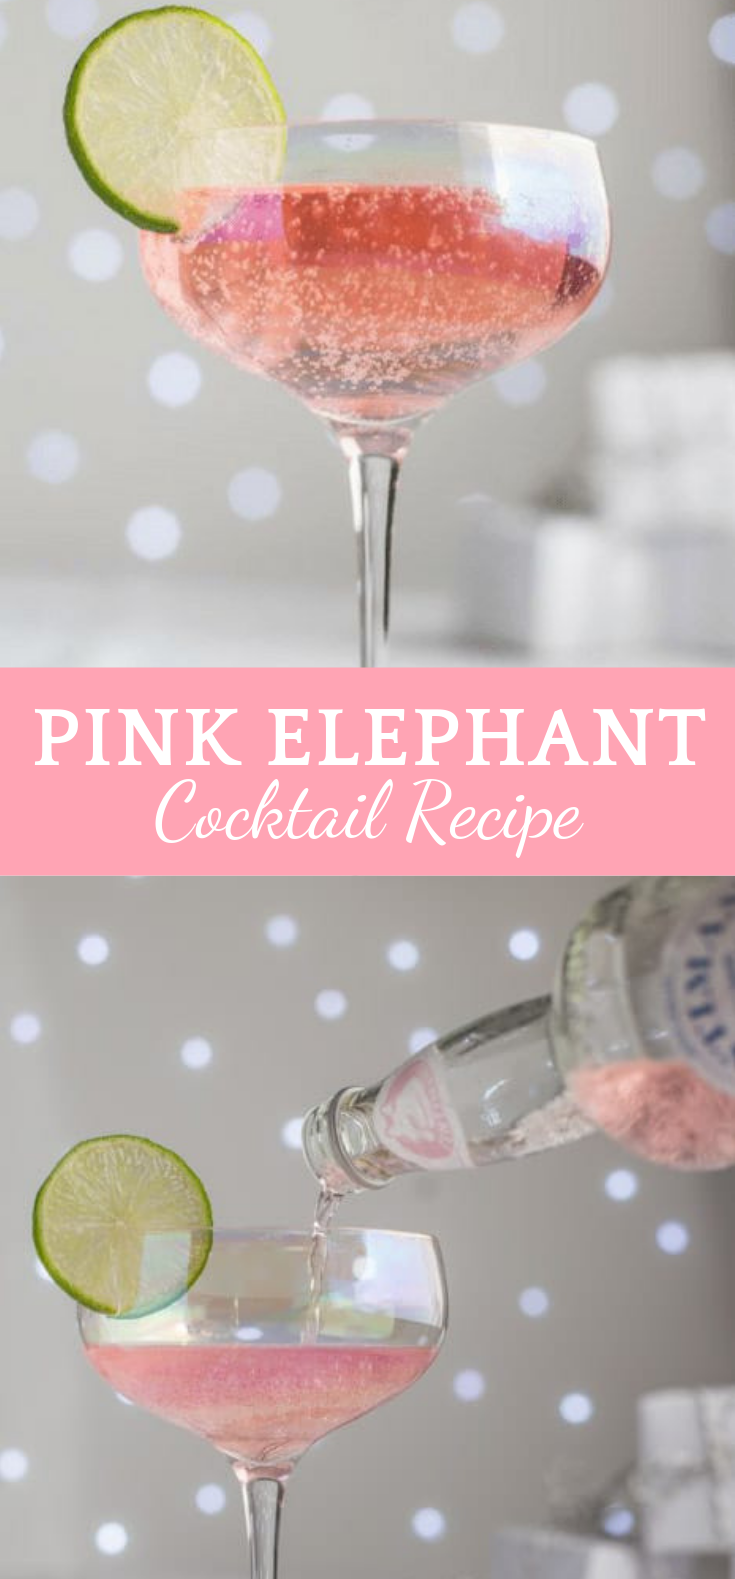 PINK ELEPHANT COCKTAIL RECIPE #Cocktail #Drink